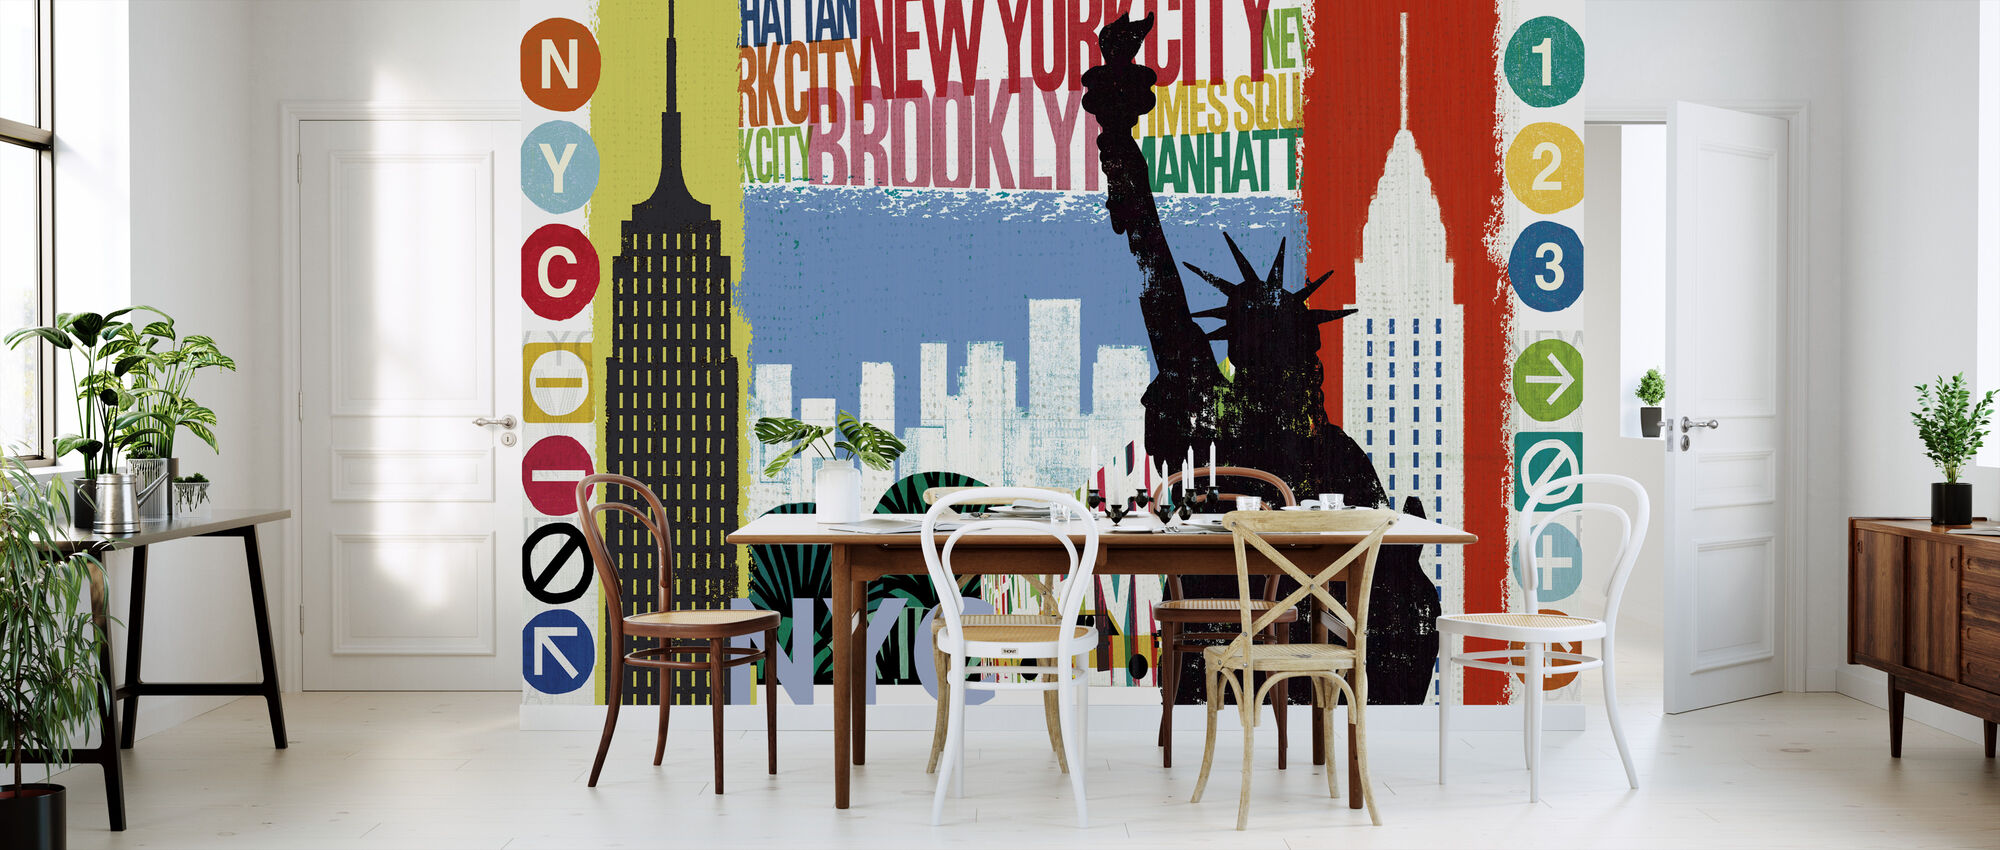 New York City Life I - Wallpaper - Kitchen